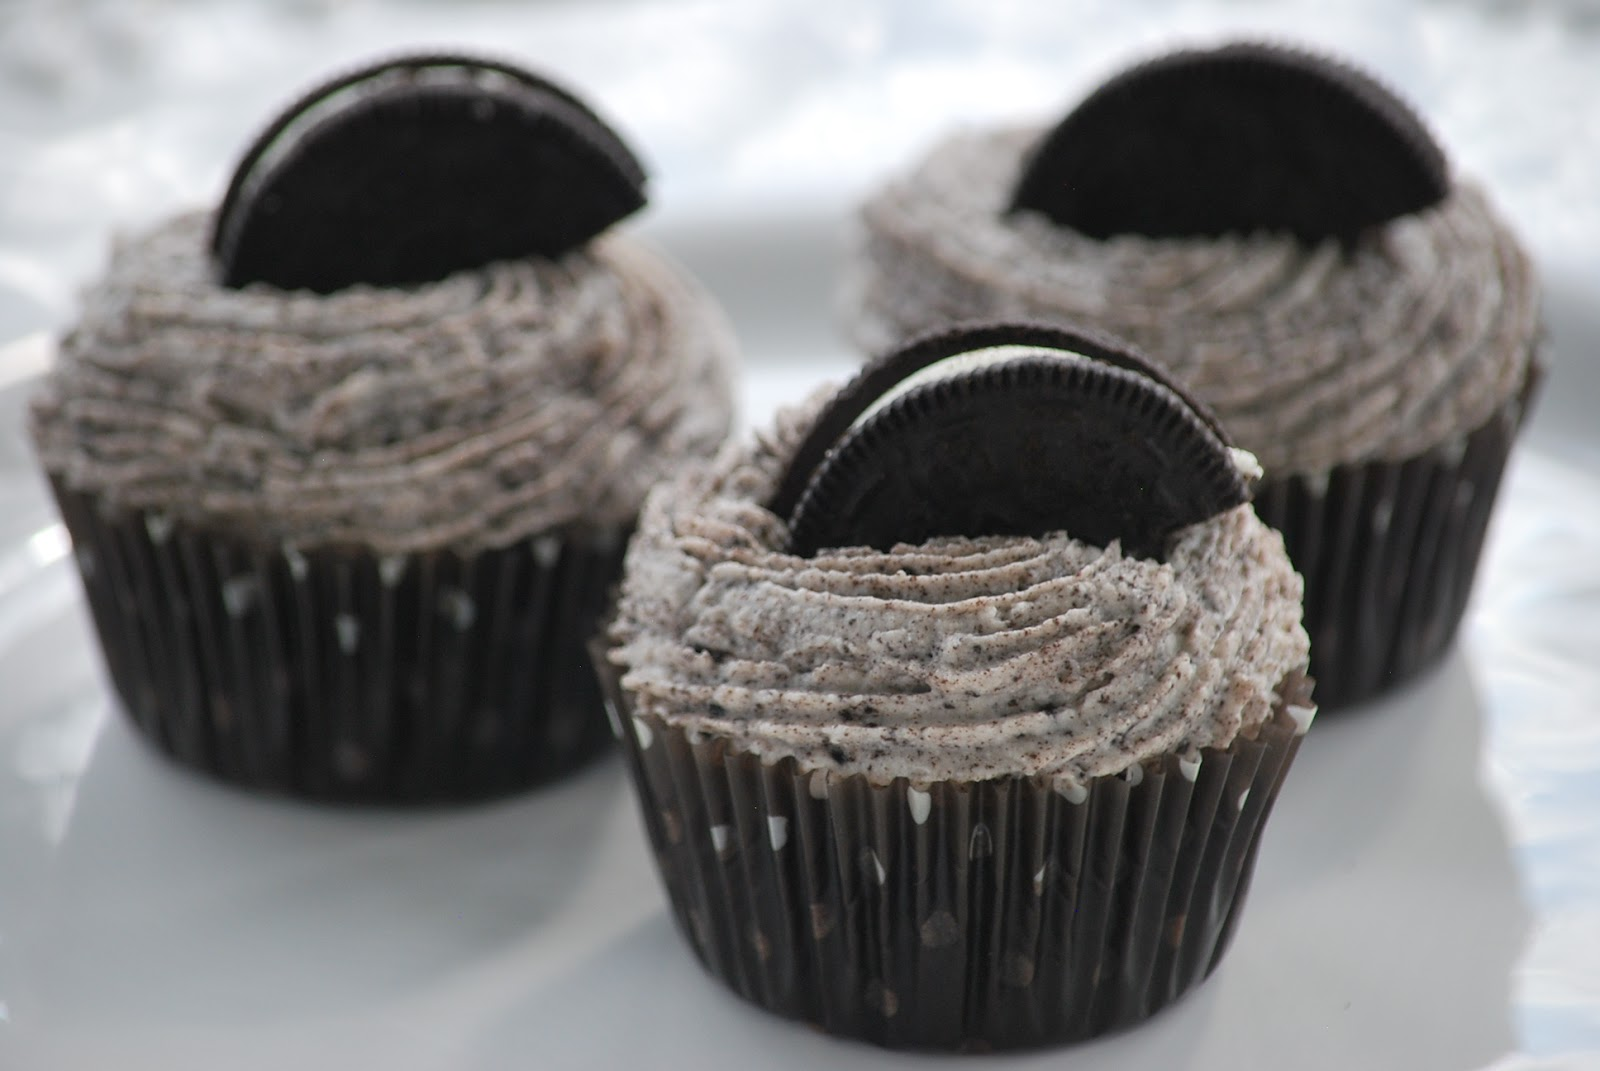 My story in recipes: Oreo Cupcakes